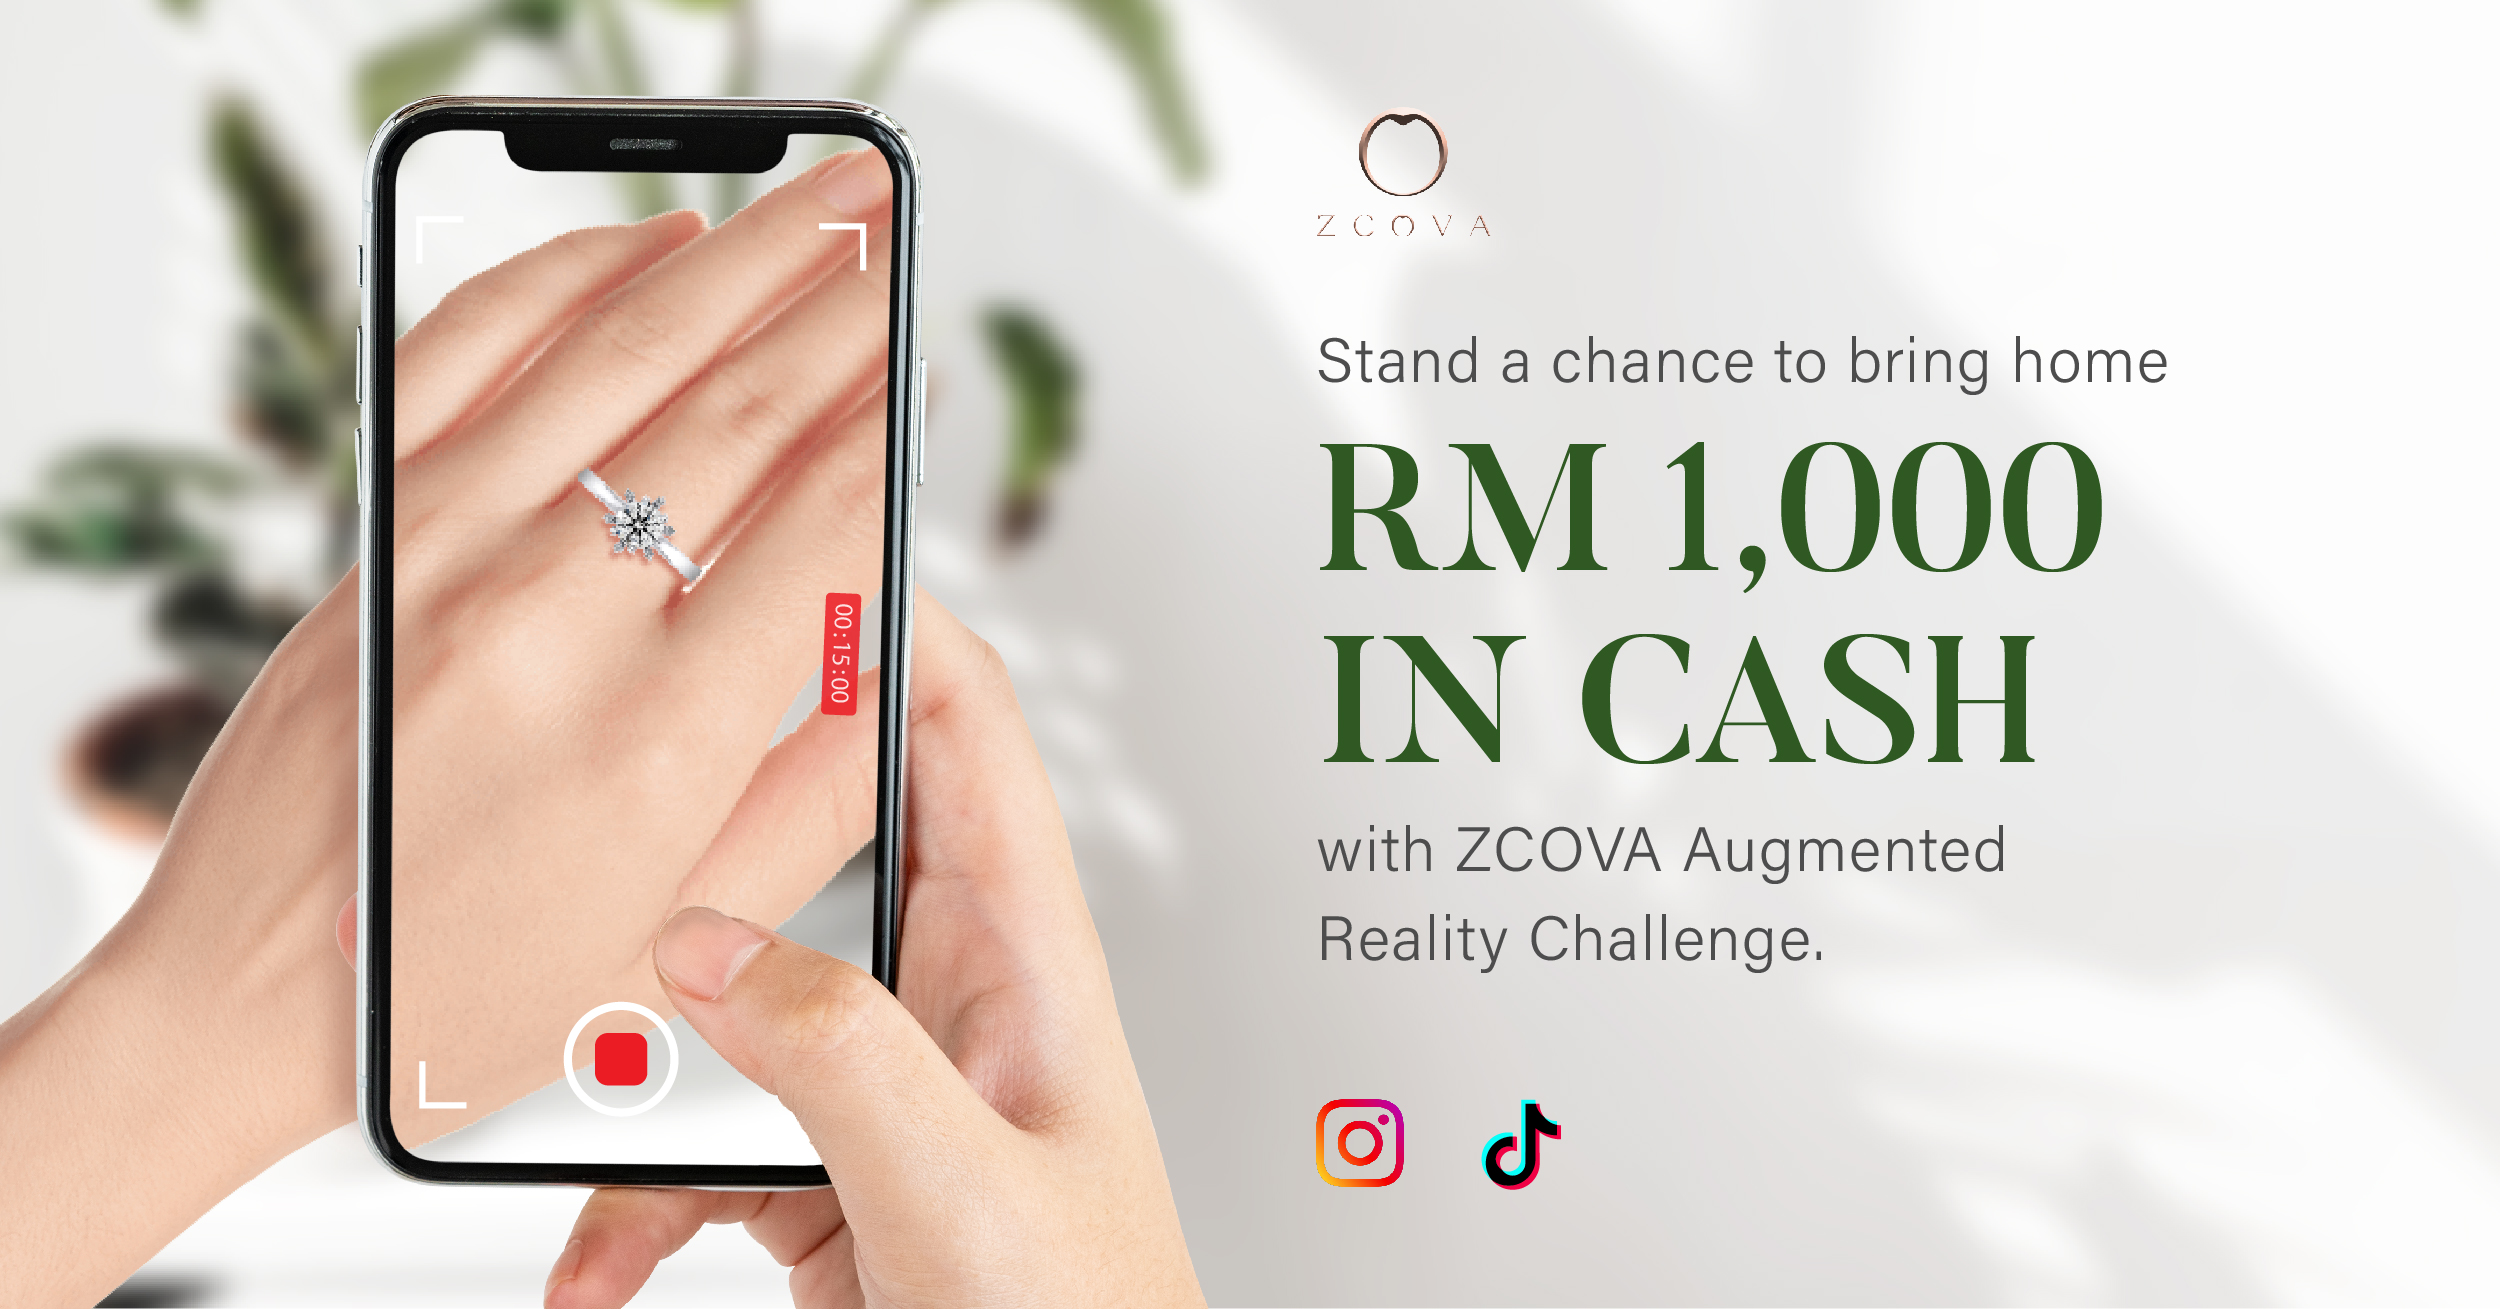 ZCOVA Augmented Reality Challenge To Win RM1000